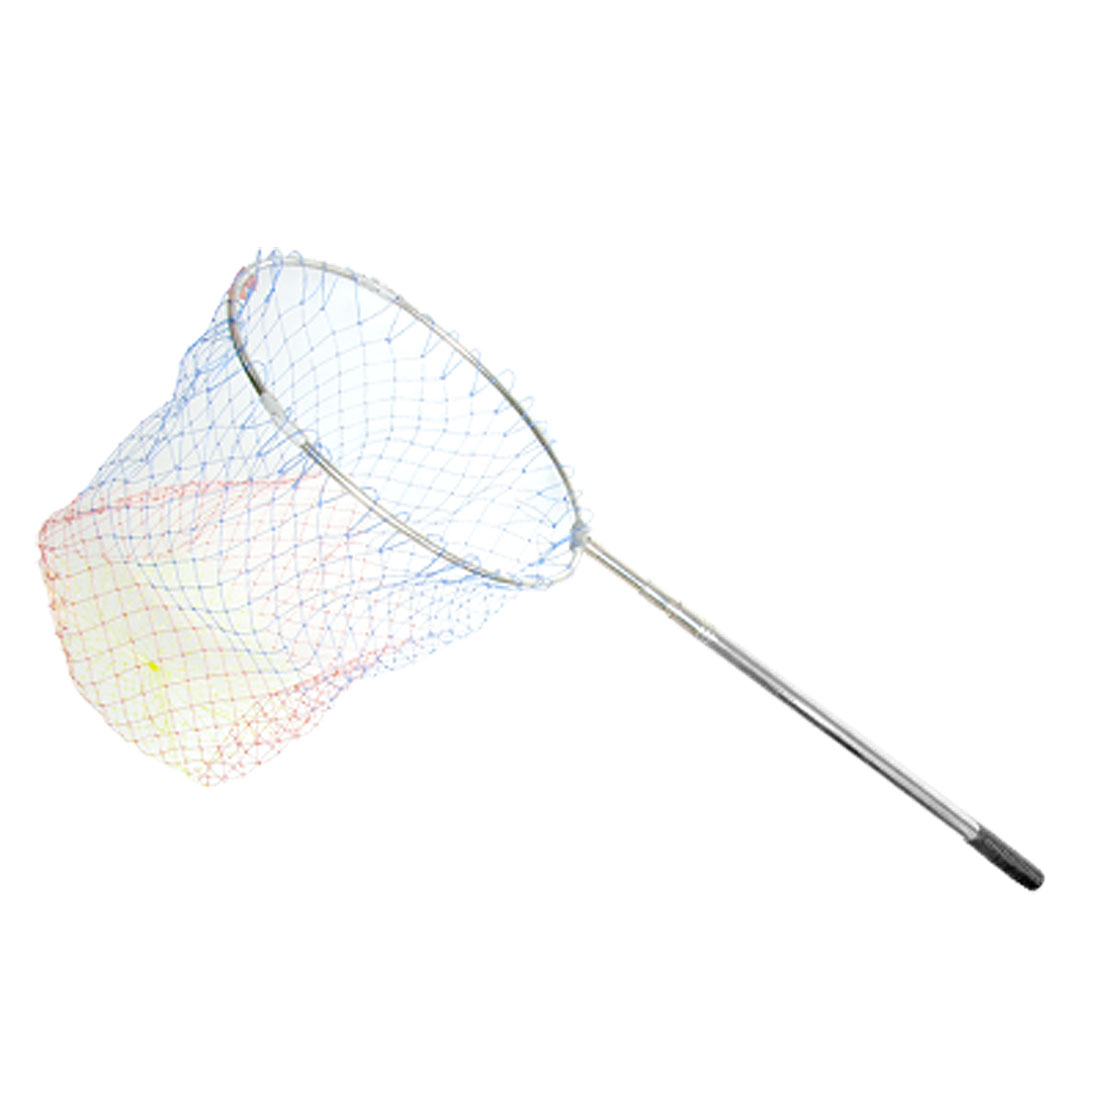 3 Sections Stainless Steel Telescopic Handle Round Fishing Landing Net